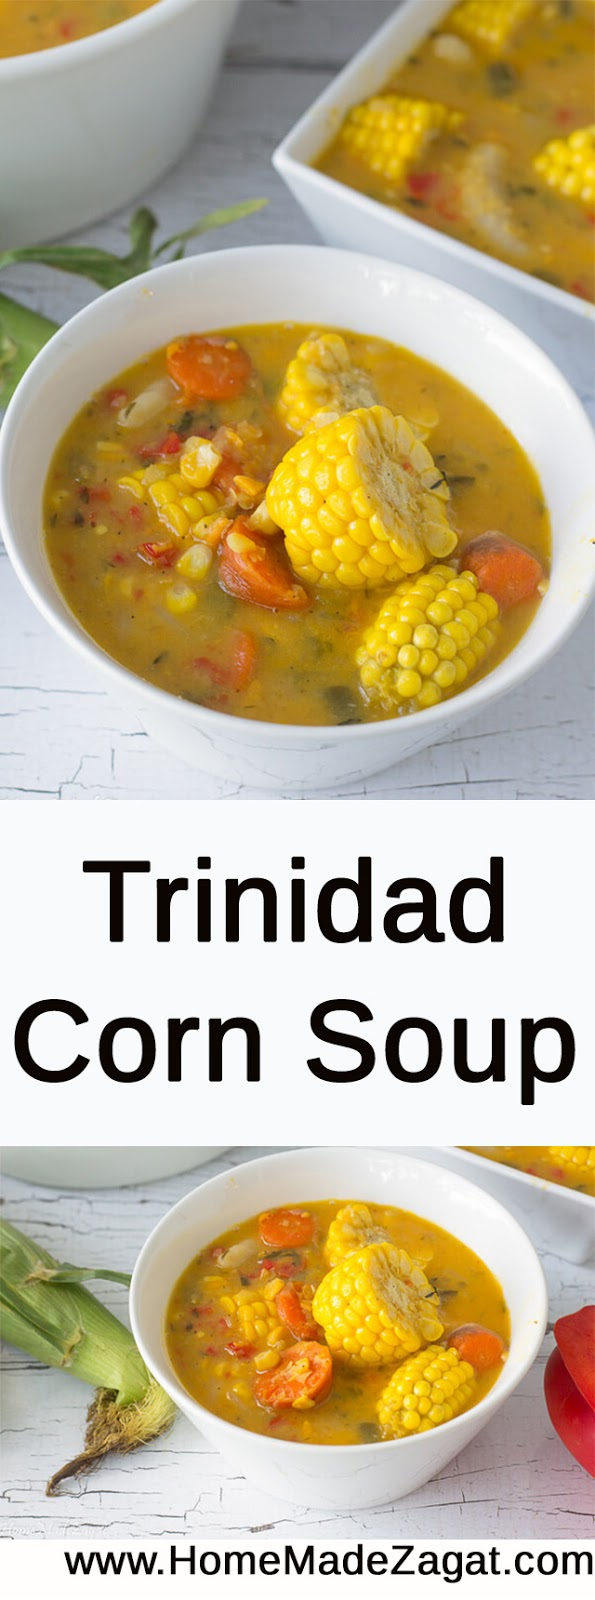 Trinidad Corn Soup Recipe